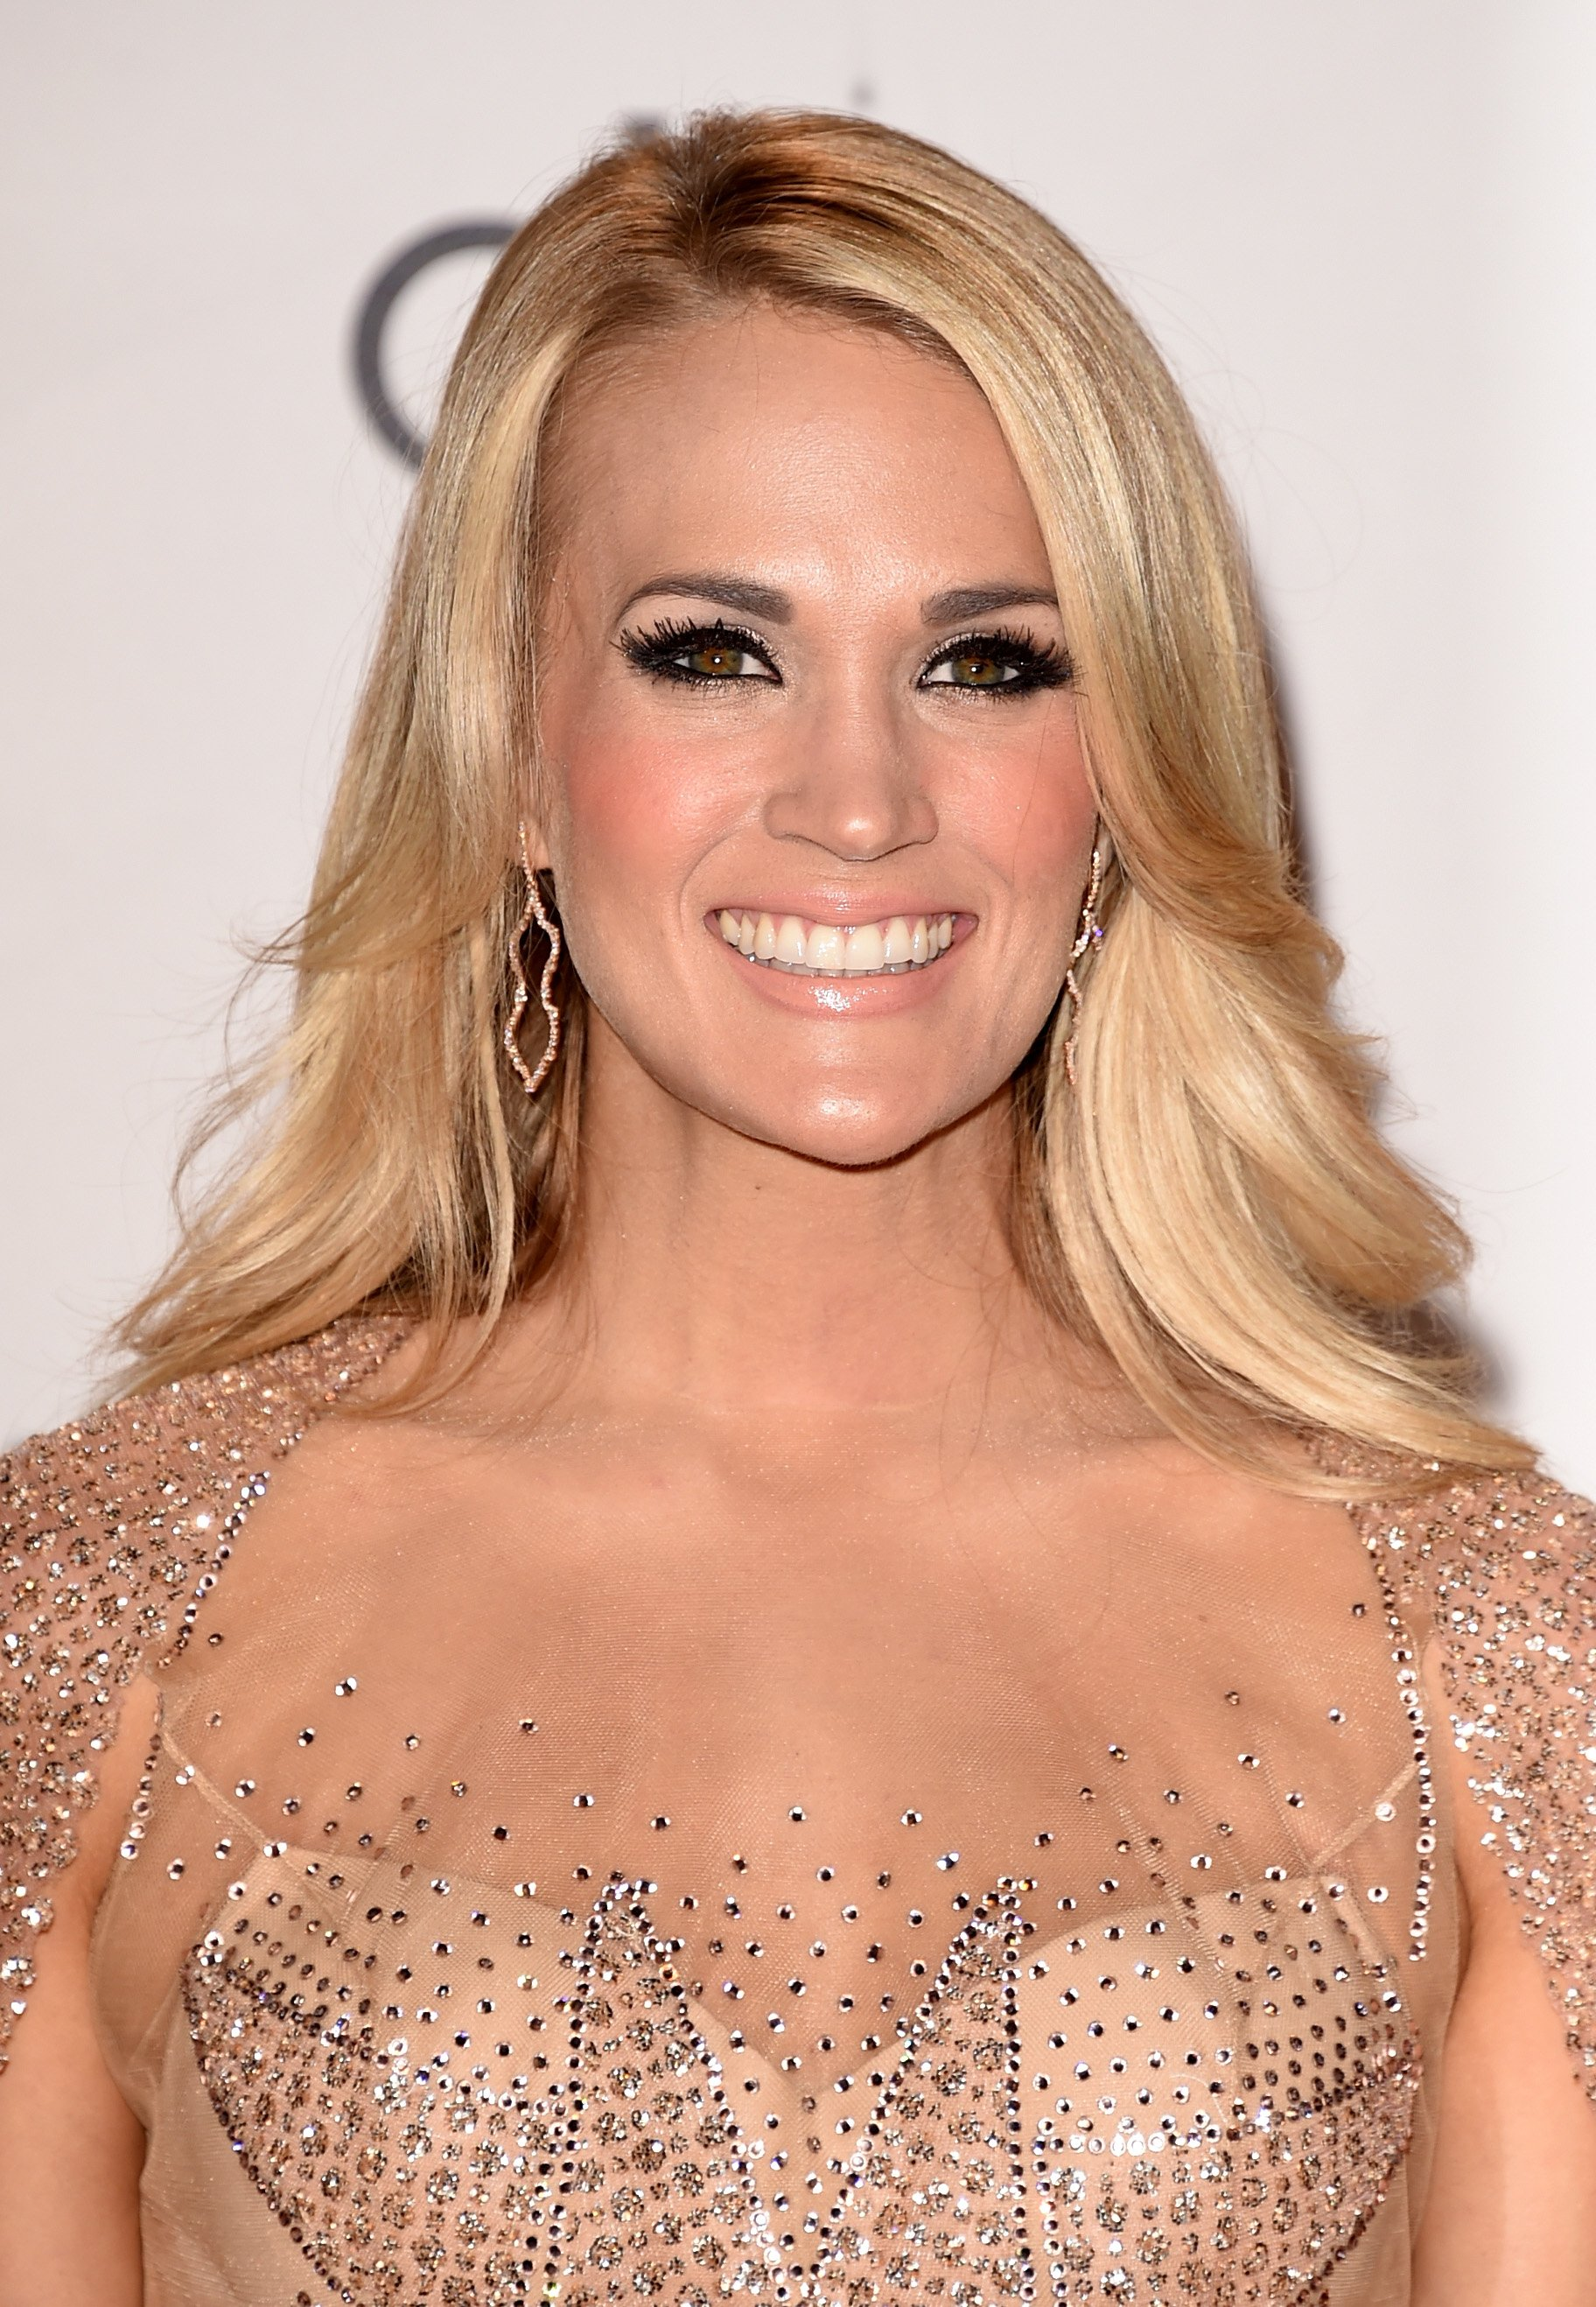 Carrie Underwood during the 2015 American Music Awards. | Source: Getty Images